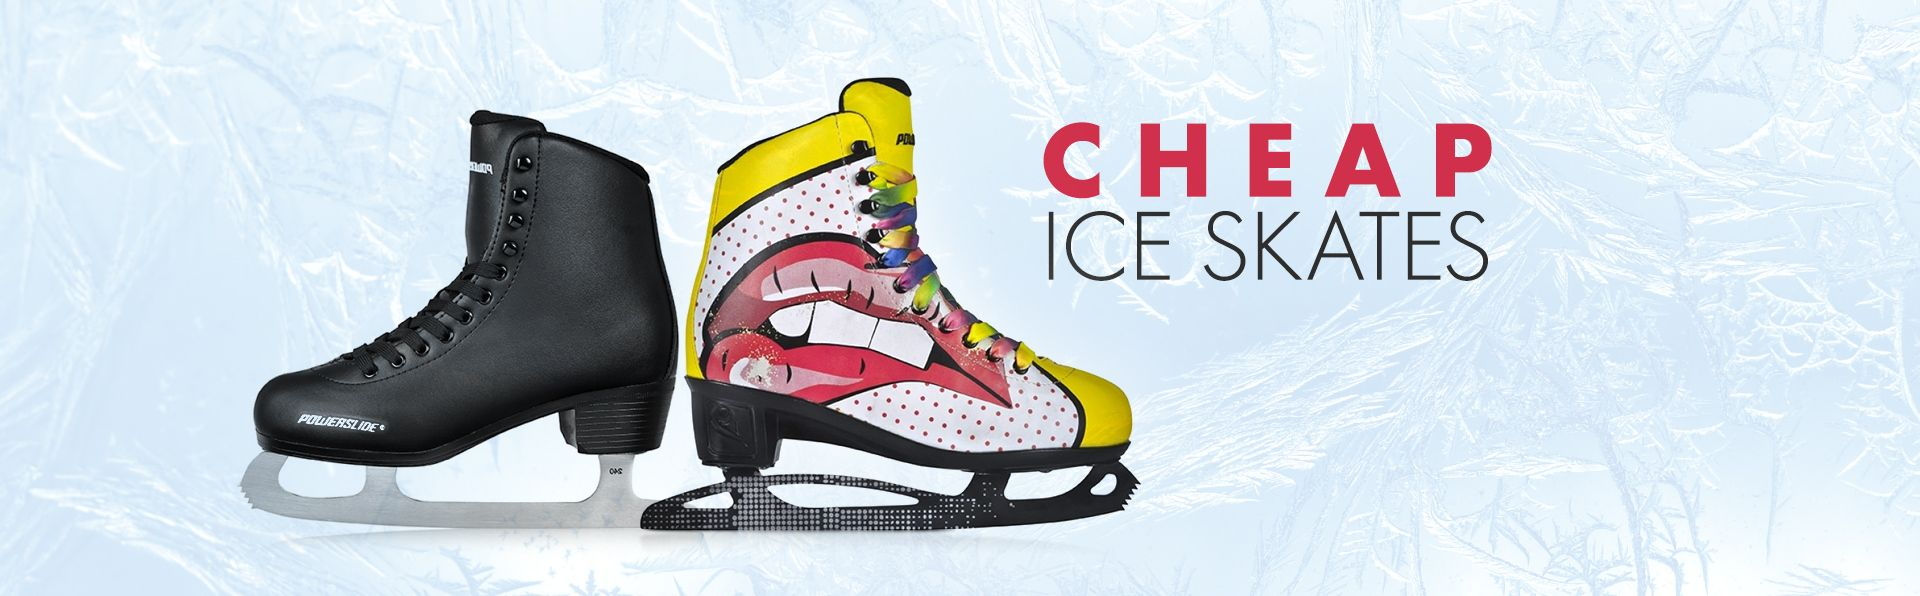 Cheap Ice Skates